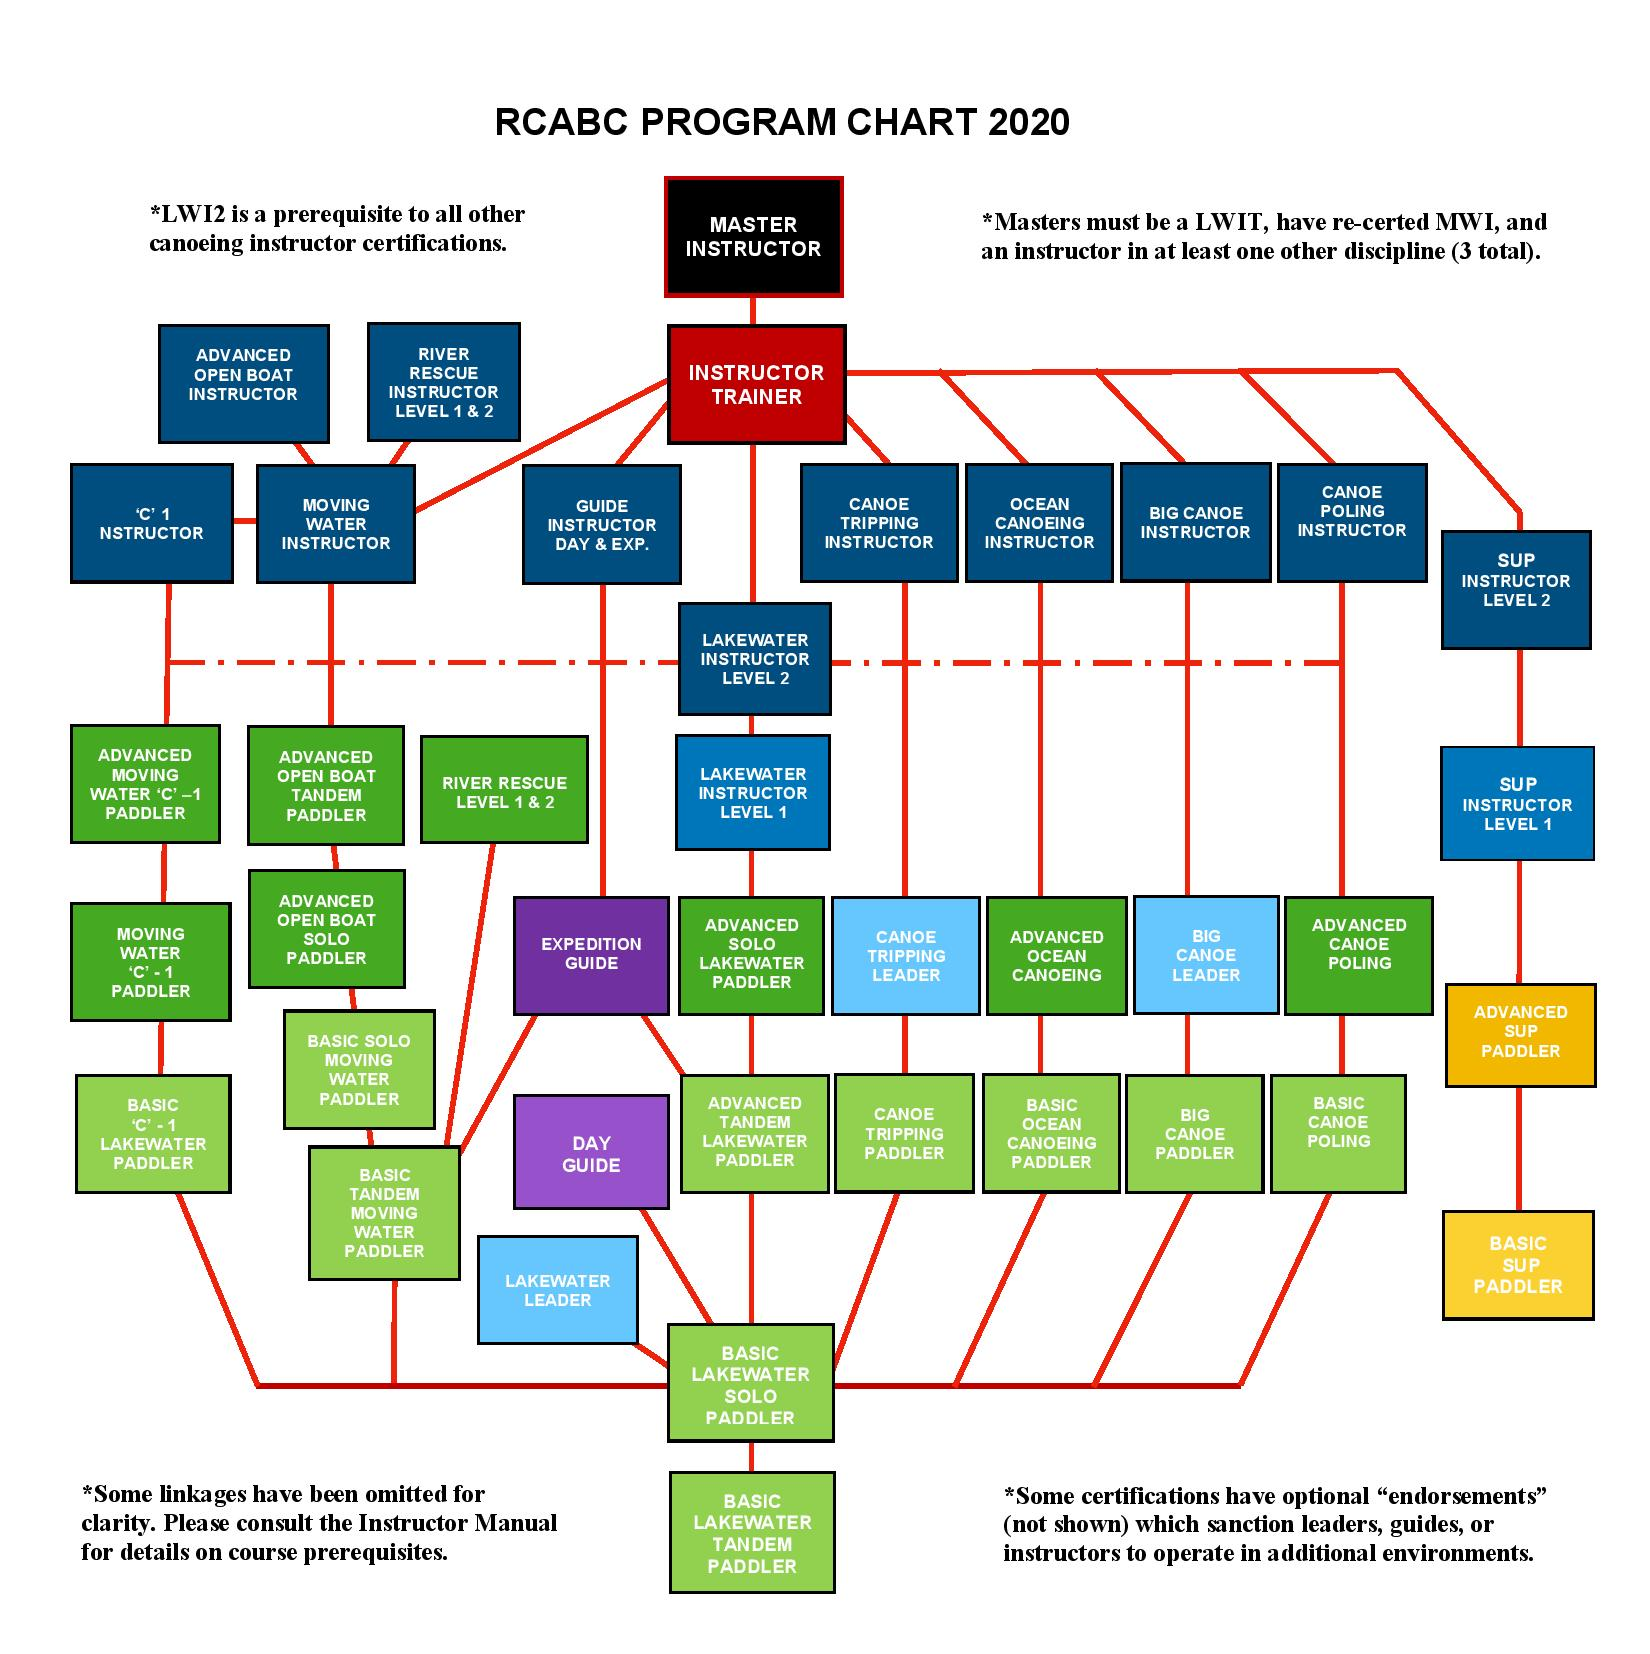 RCABC PROGRAM CHART 2020 image colour